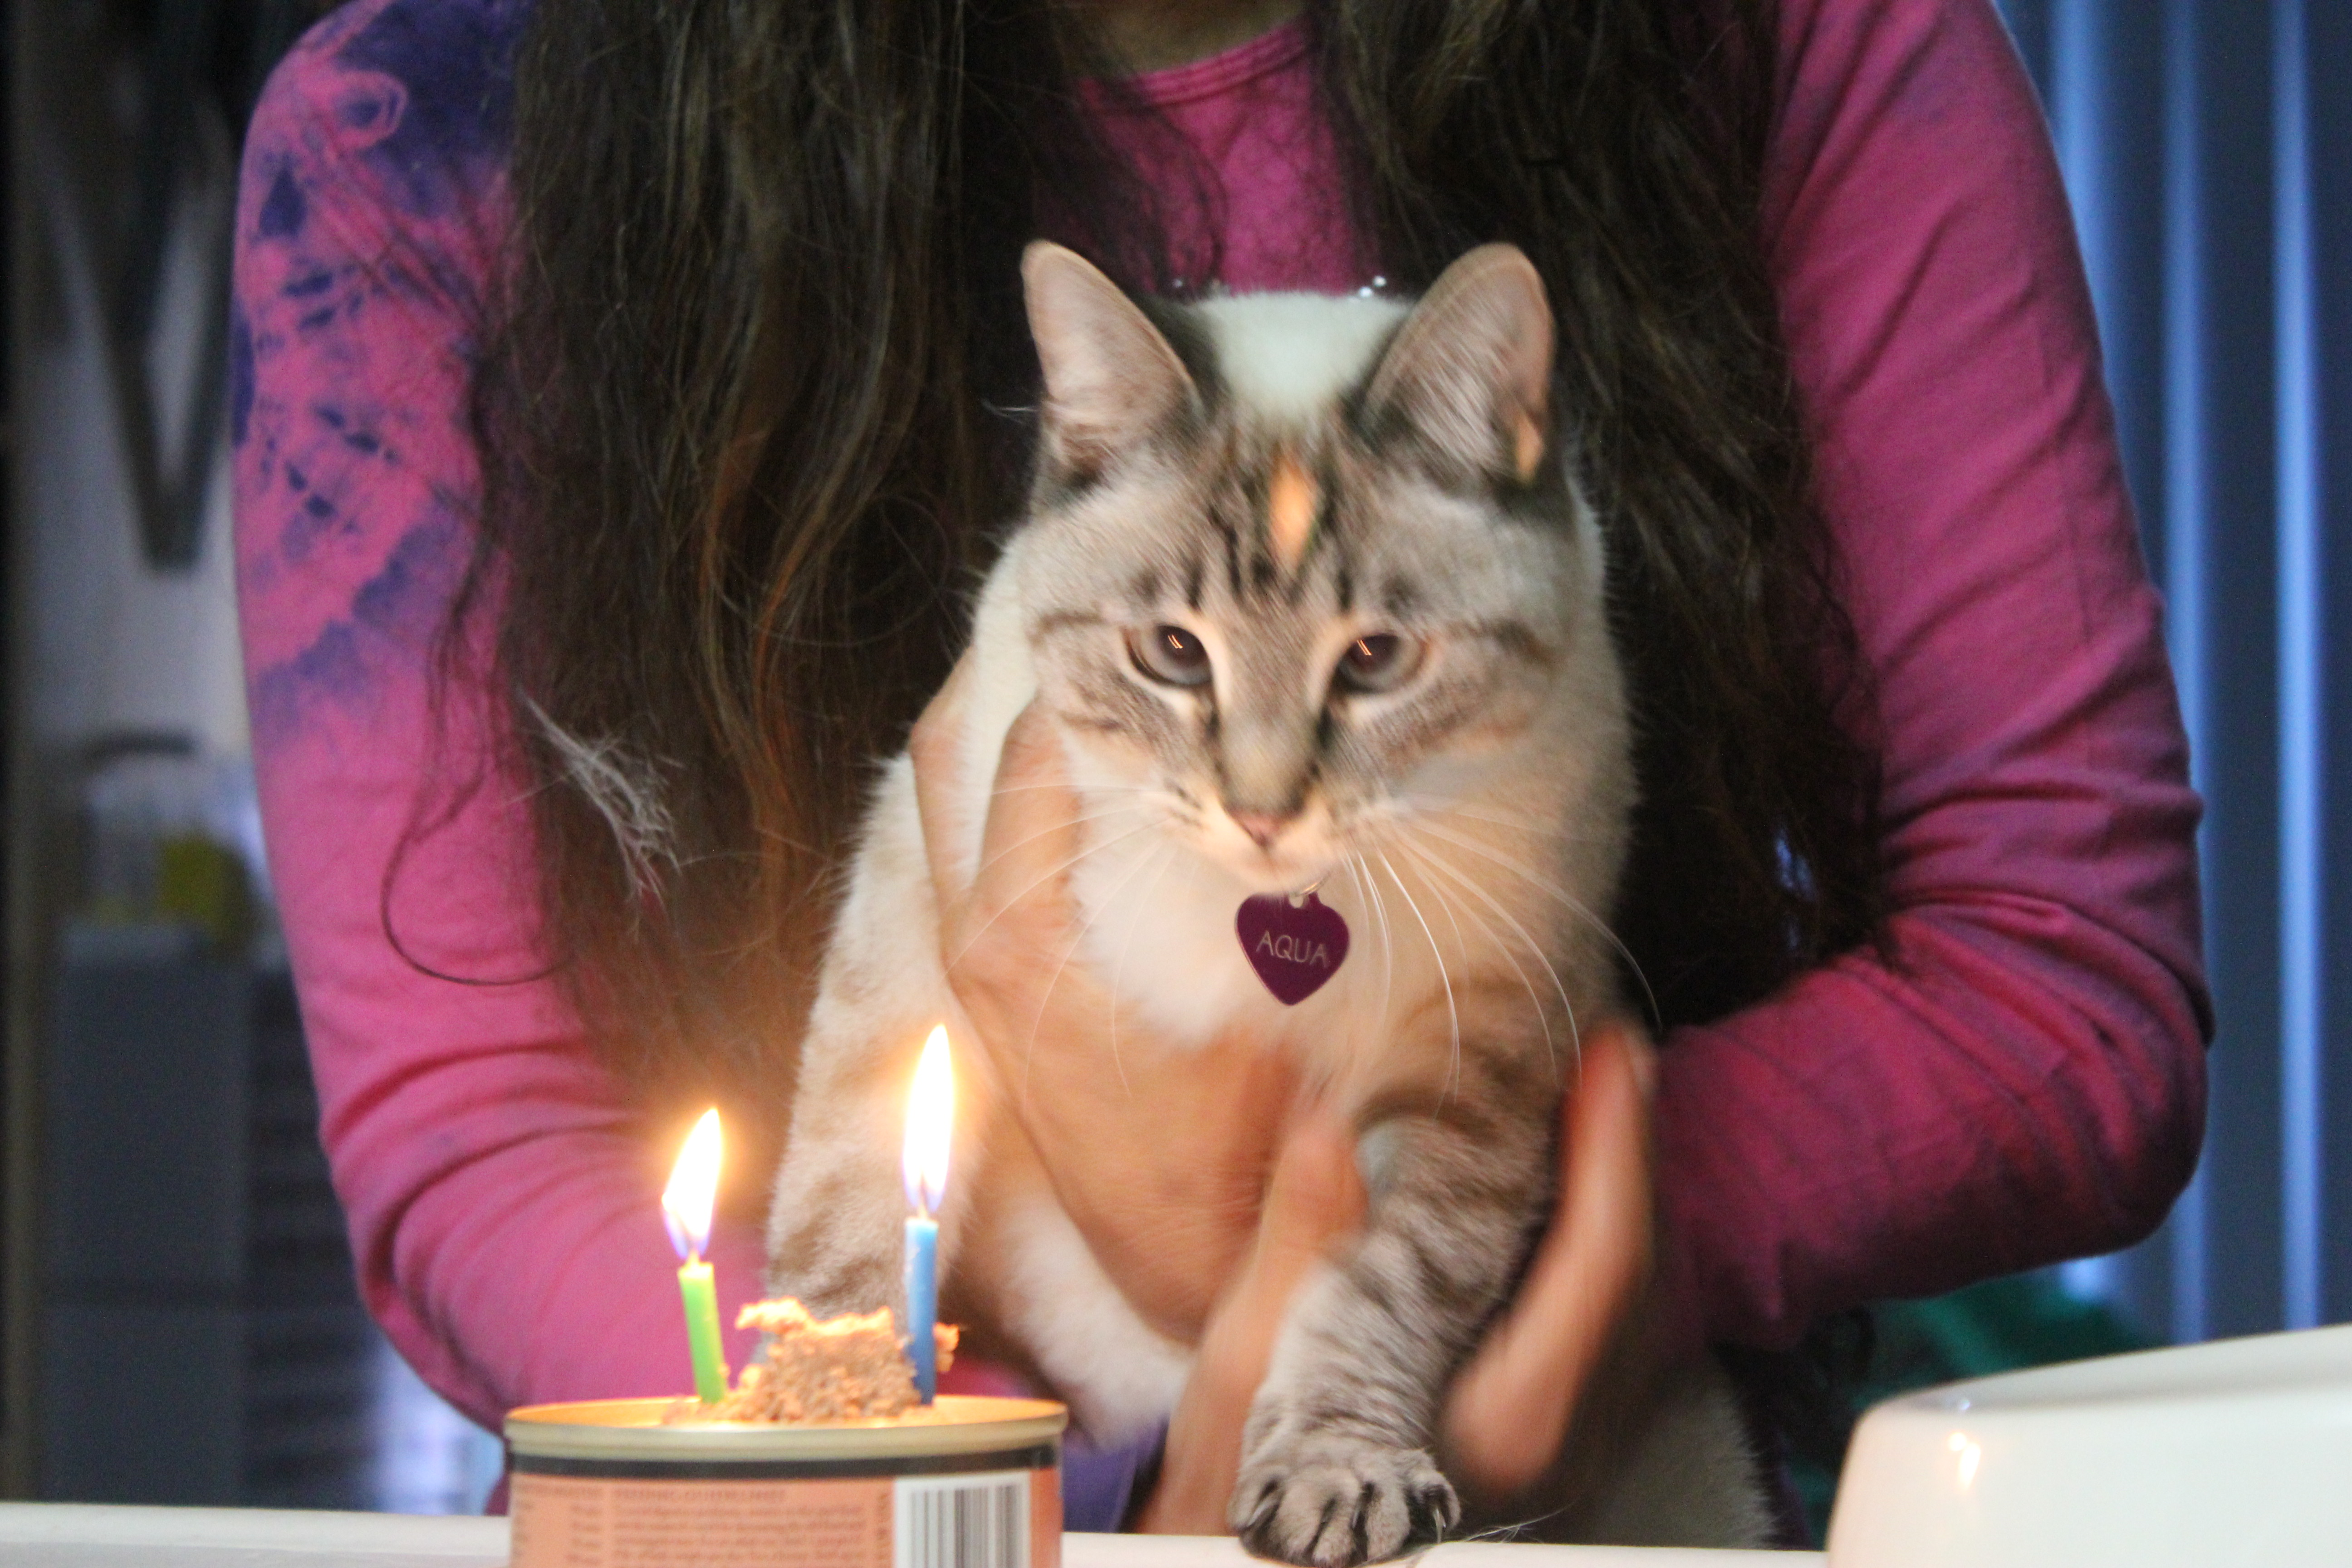 IMG_0418 Aqua staring at birthday candles on can of catfoot